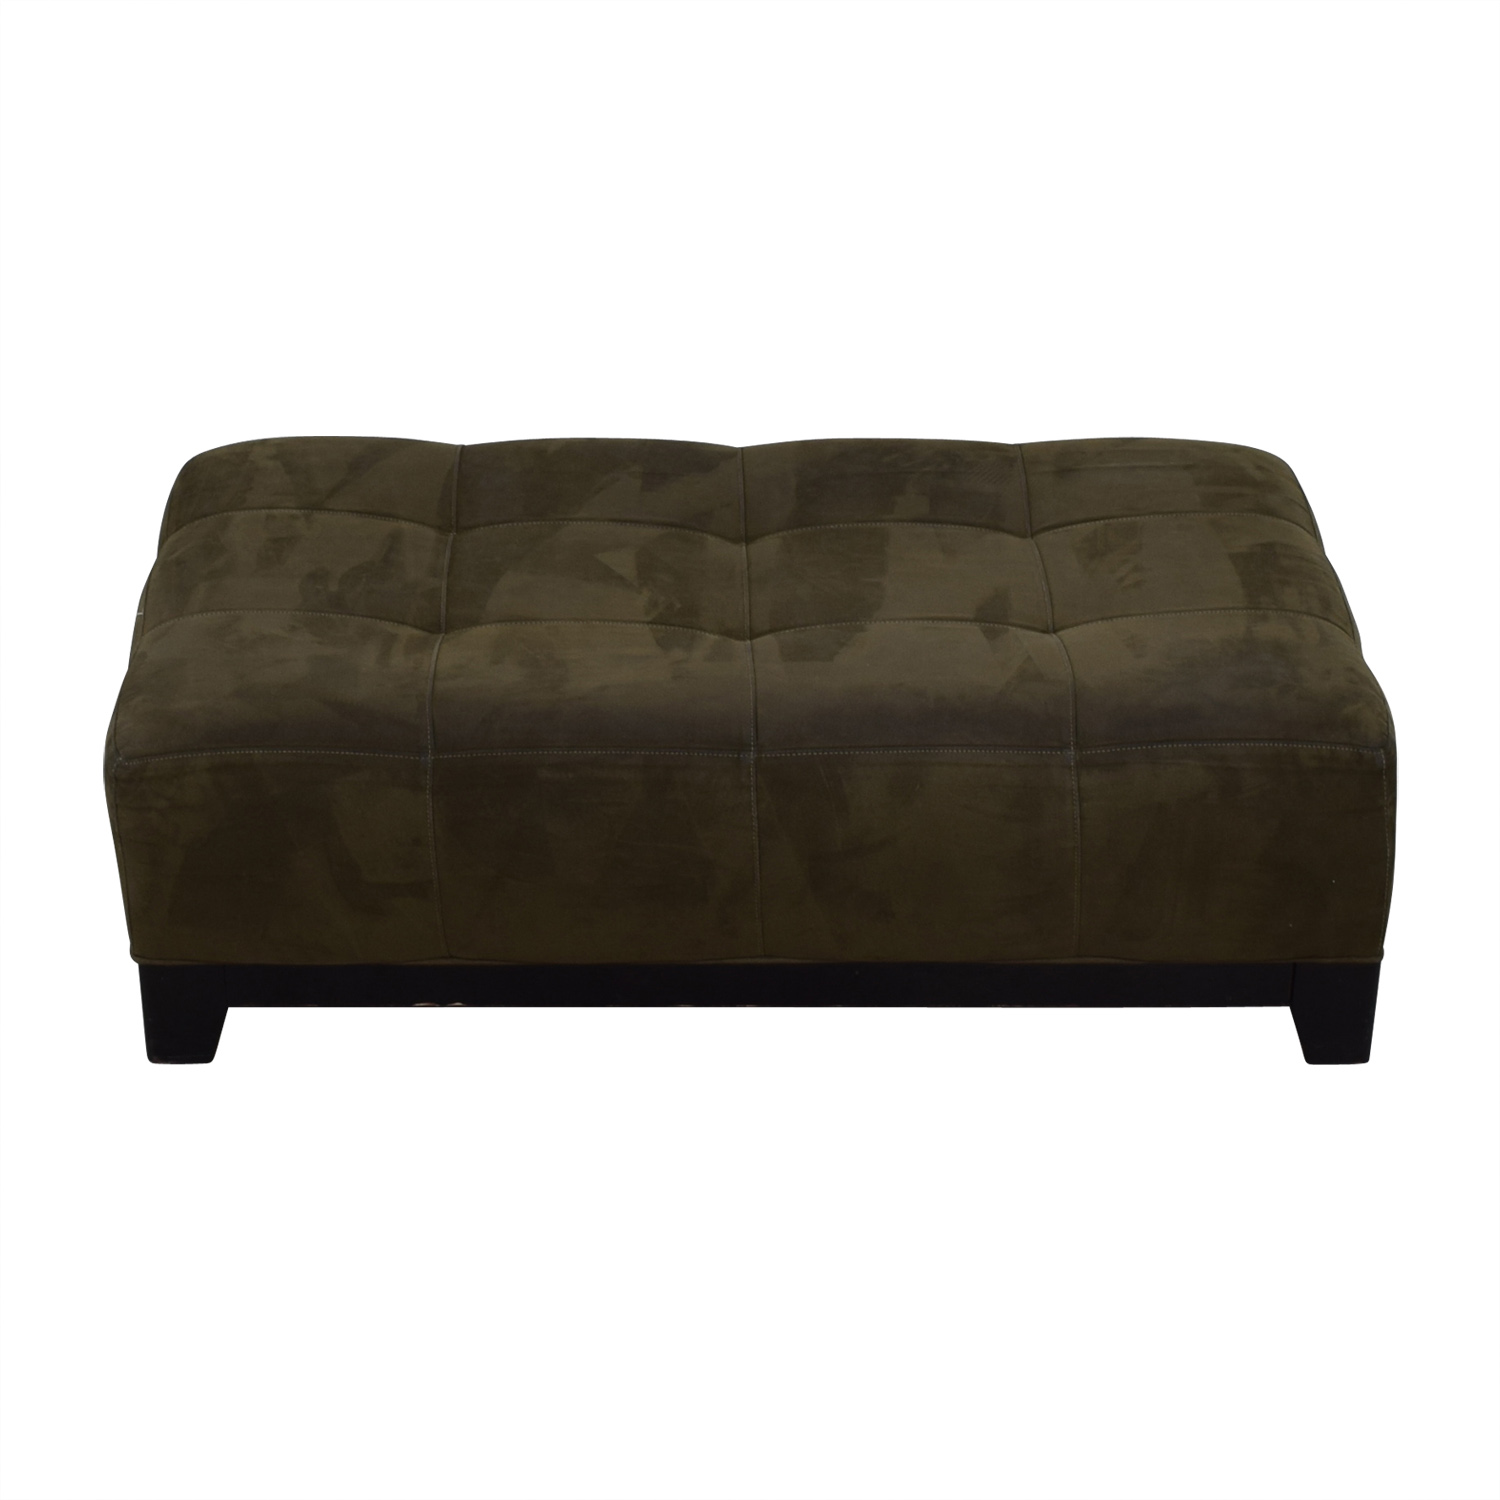 shop Raymour & Flanigan Raymour & Flanigan Brown Leather Ottoman online